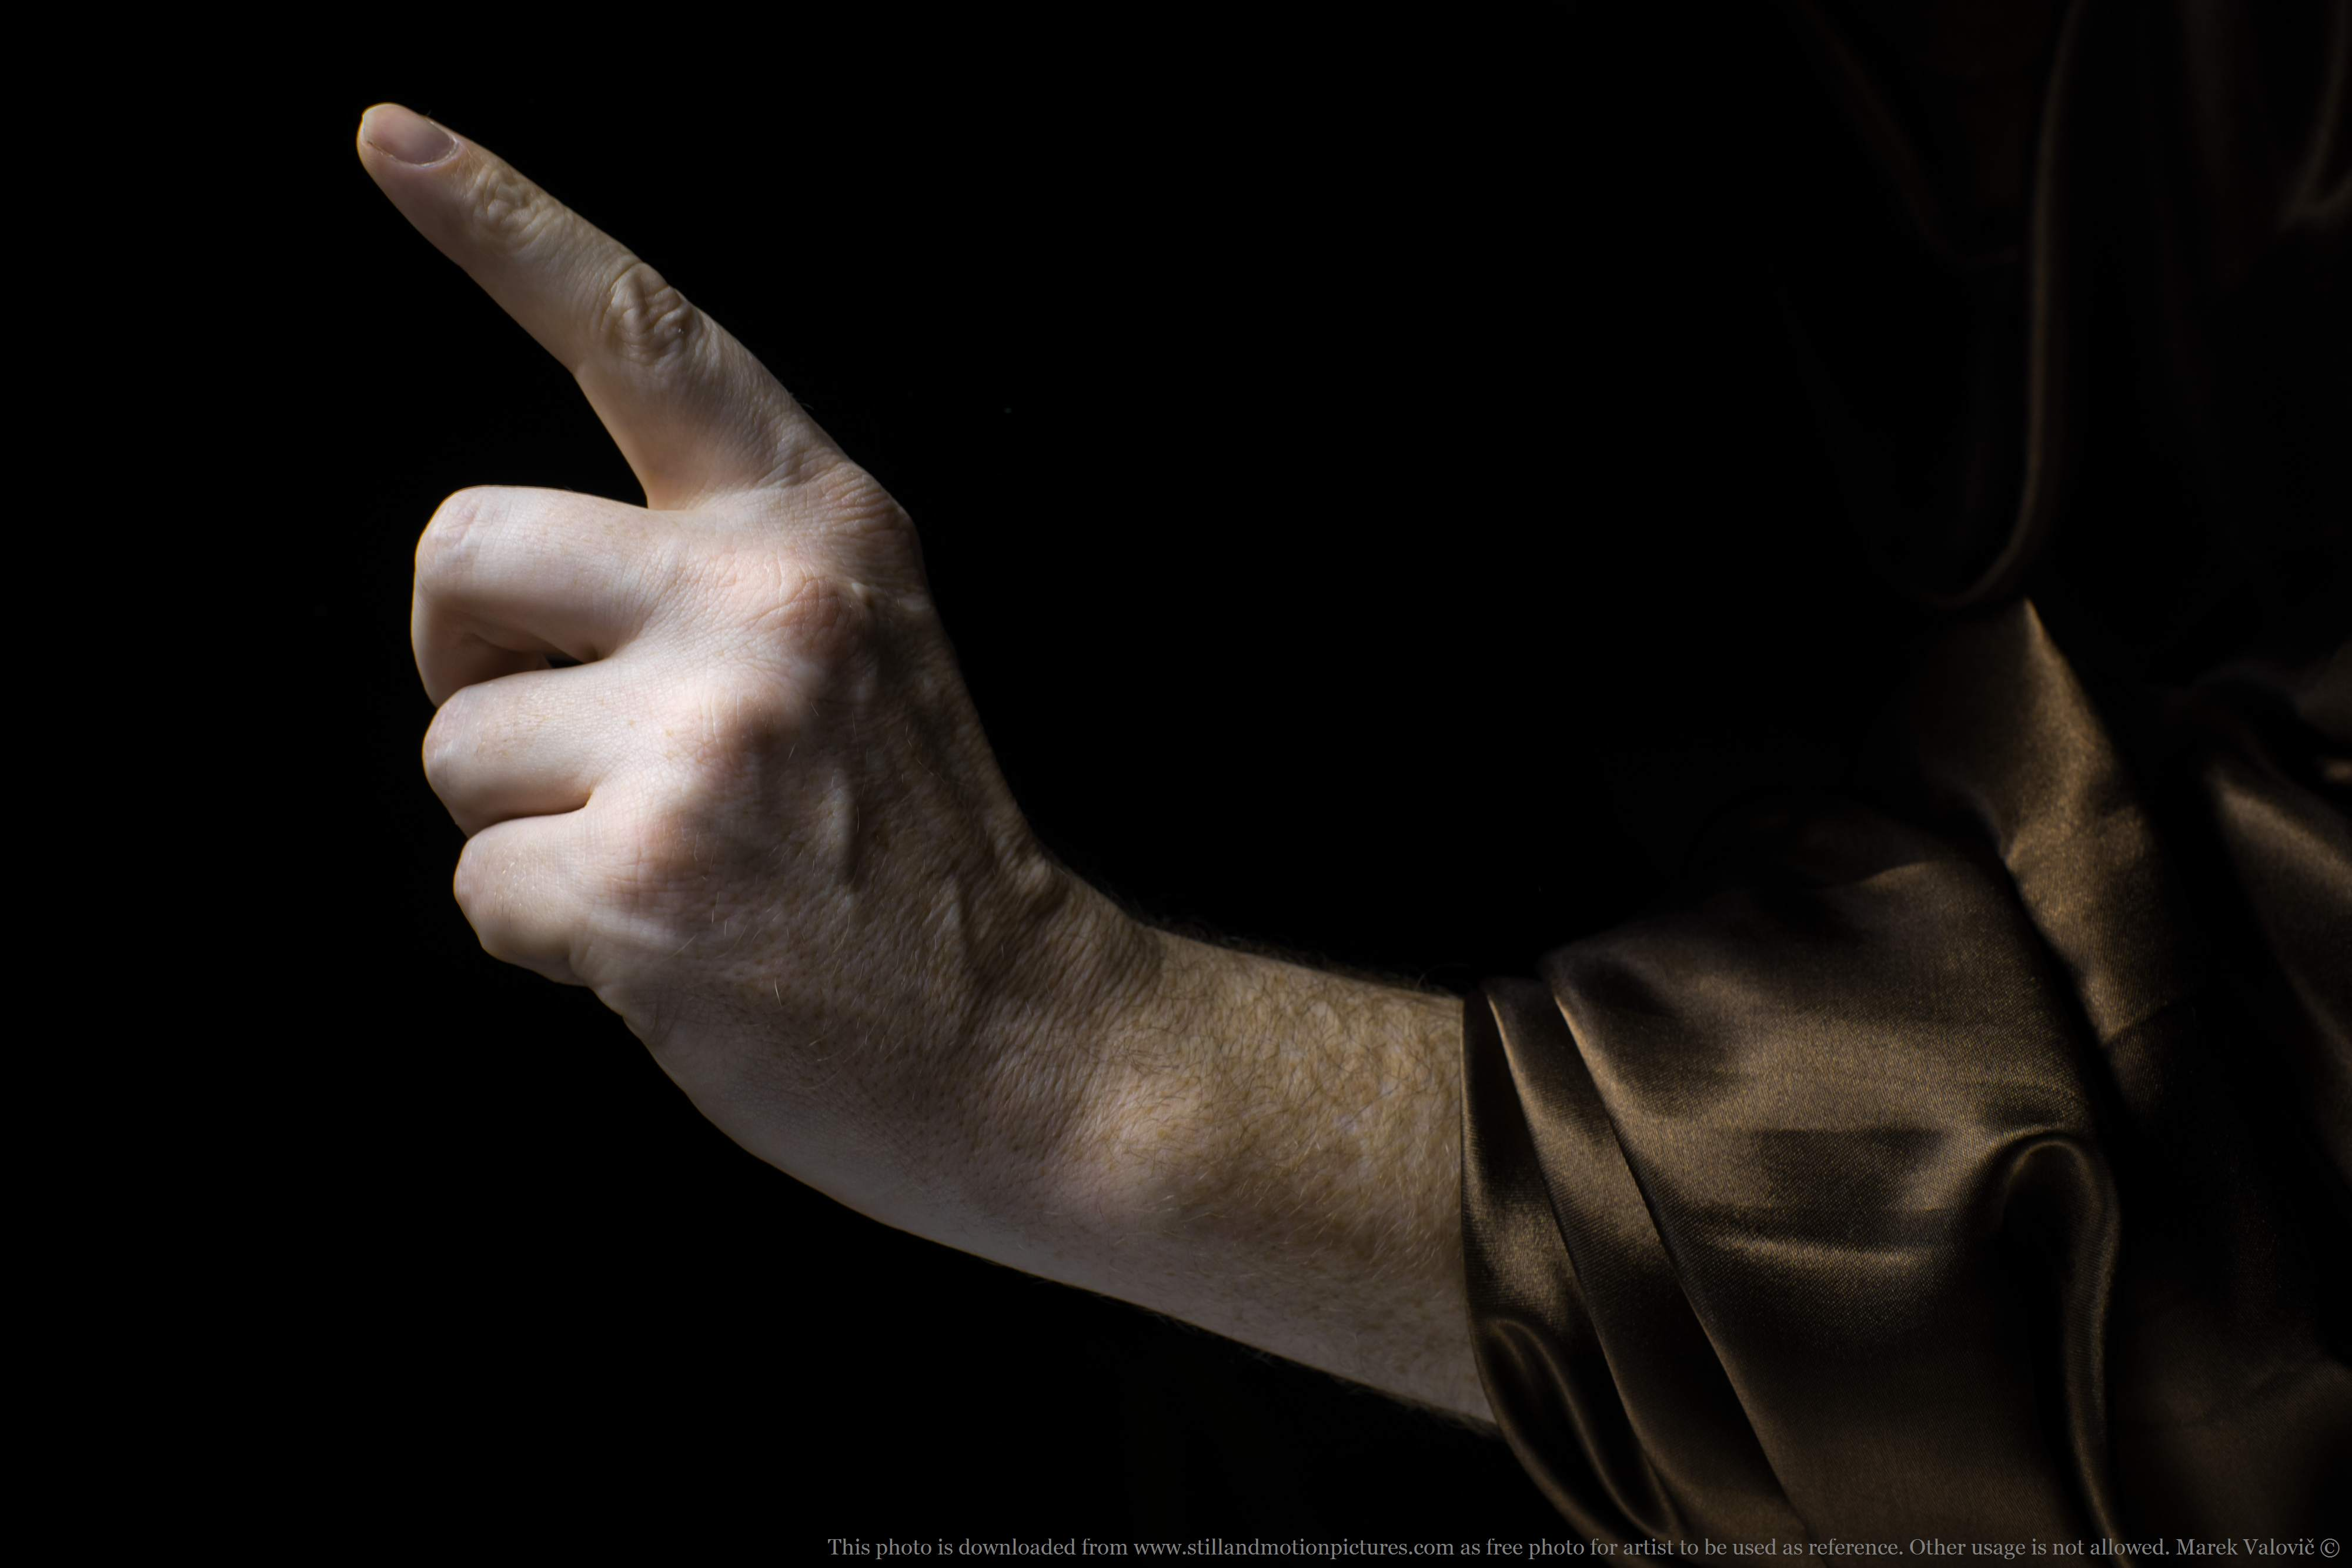 hand anatomy - man's pointing finger - free referefce photo for artists